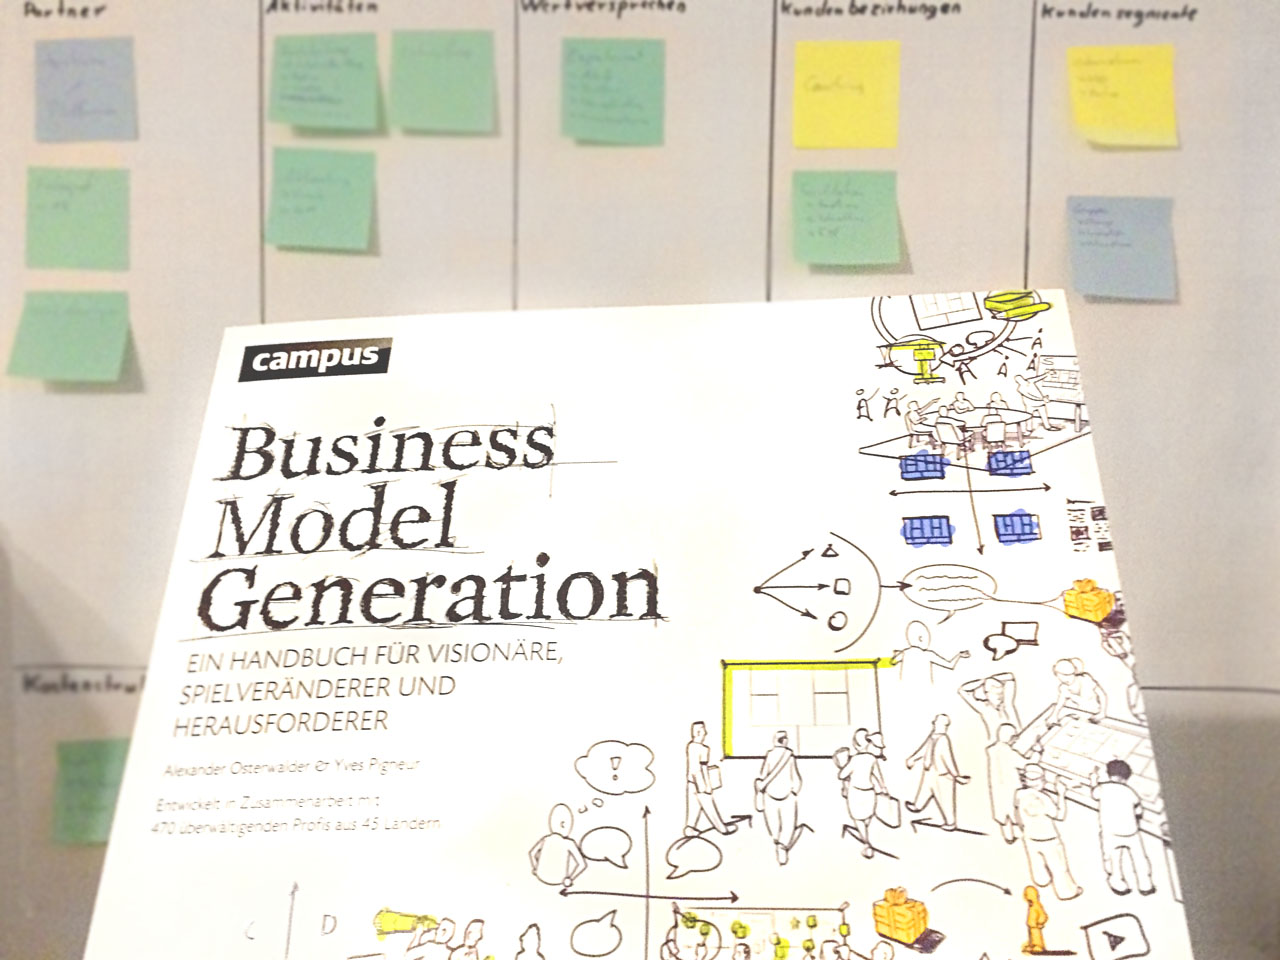 Alexander Osterwalder: Business Model Generation